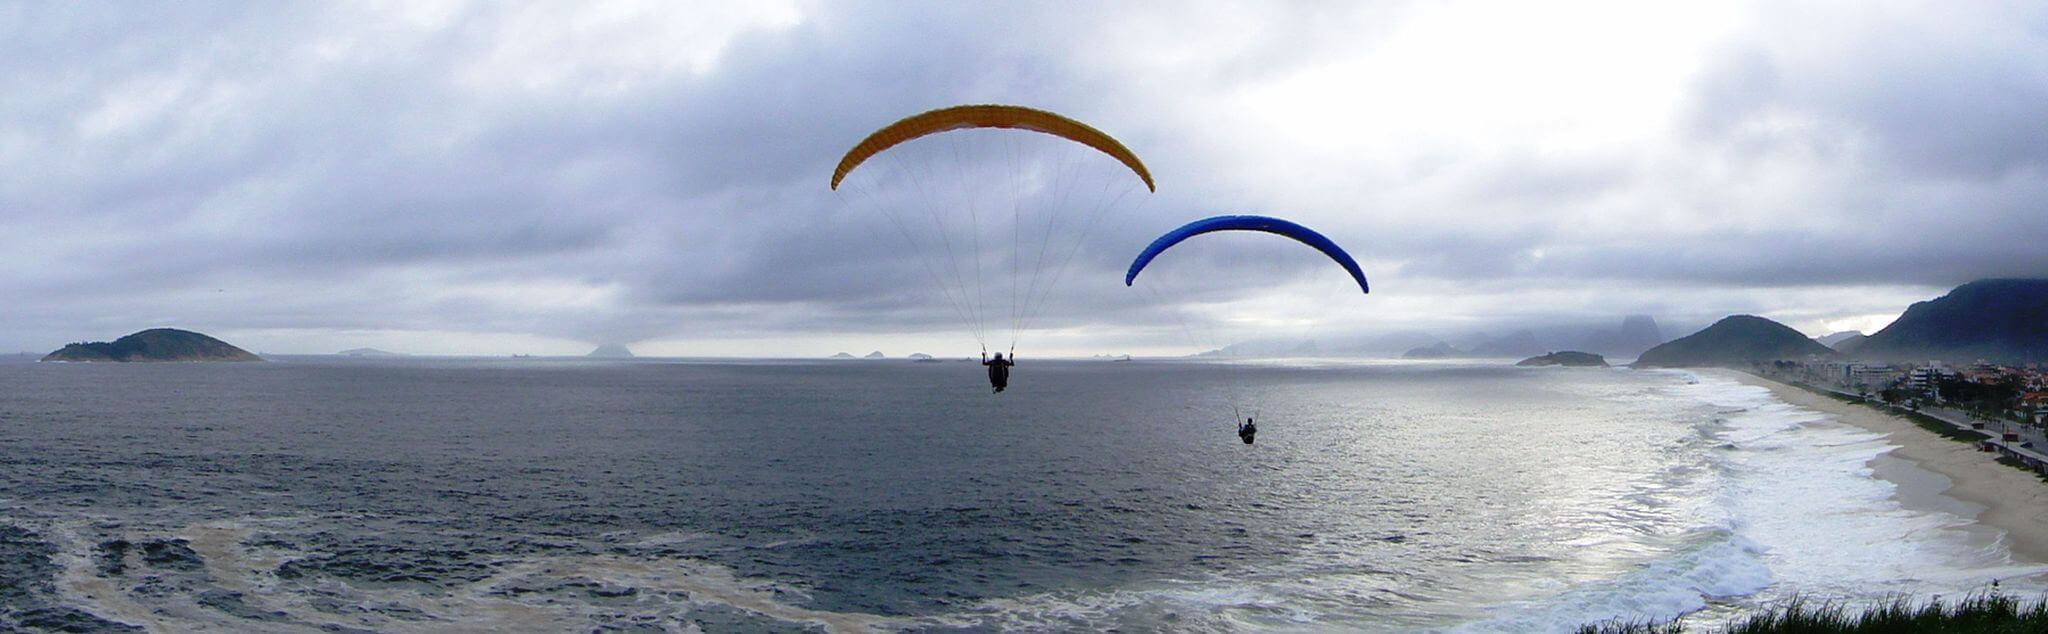 Paragliding in Cuenca (City)